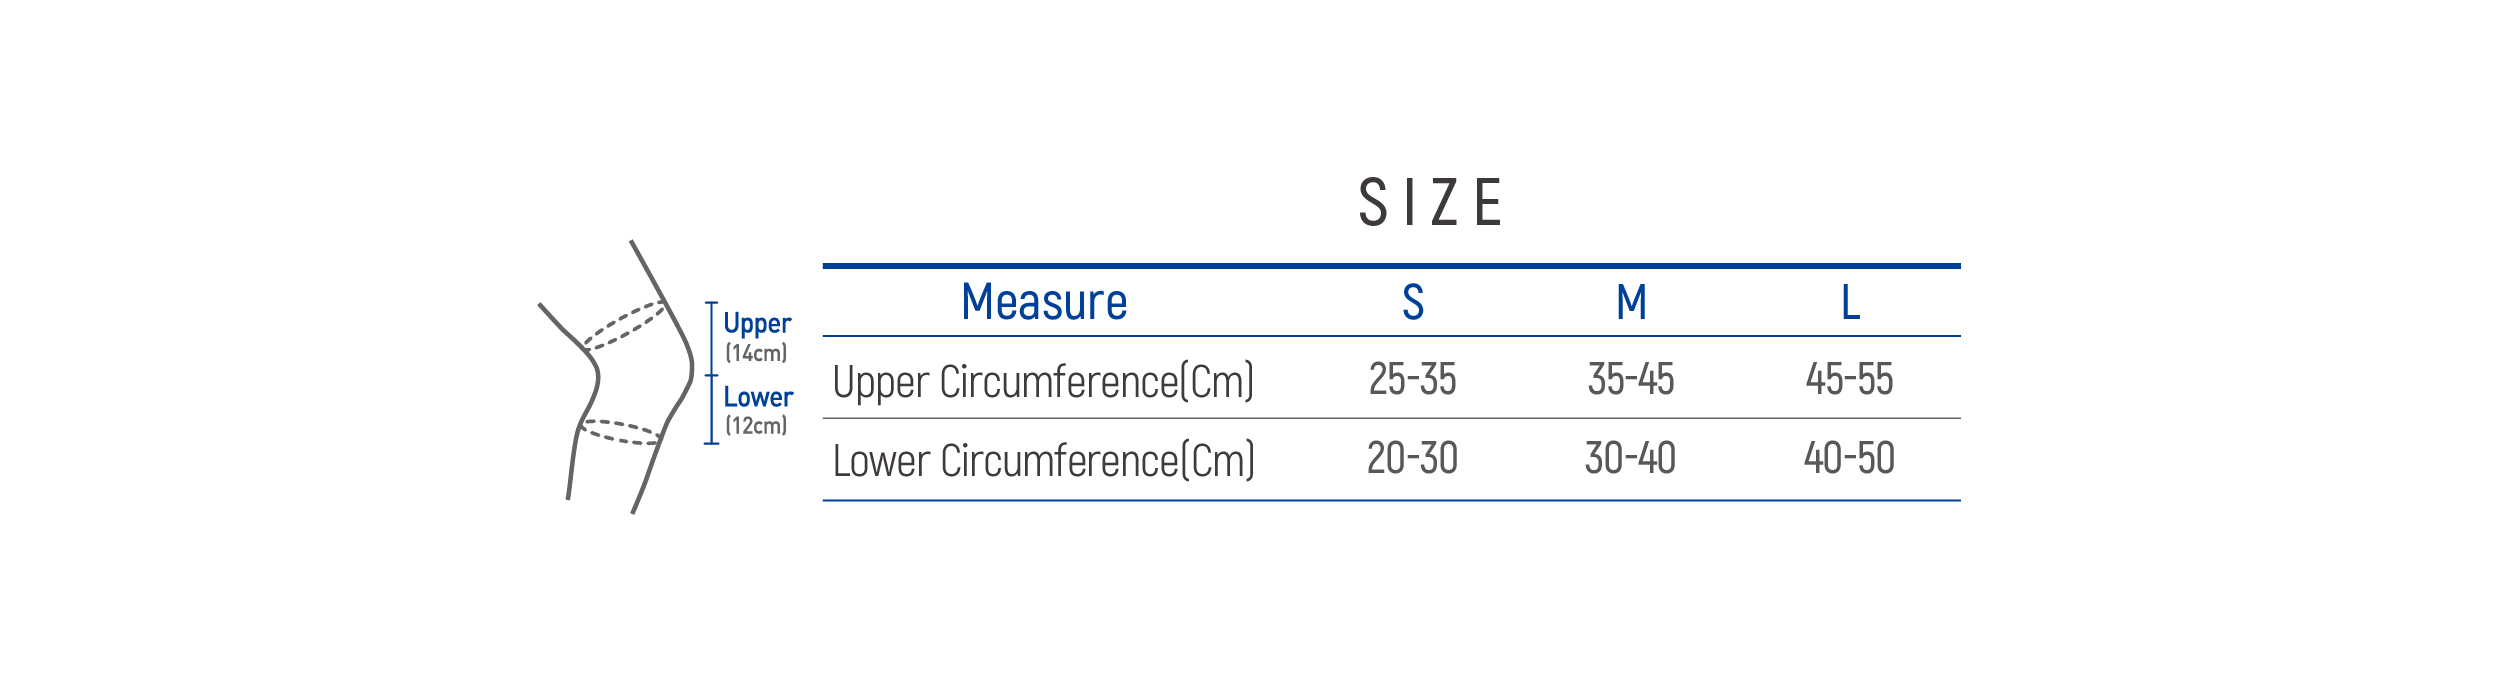 DR-K024 Size table image